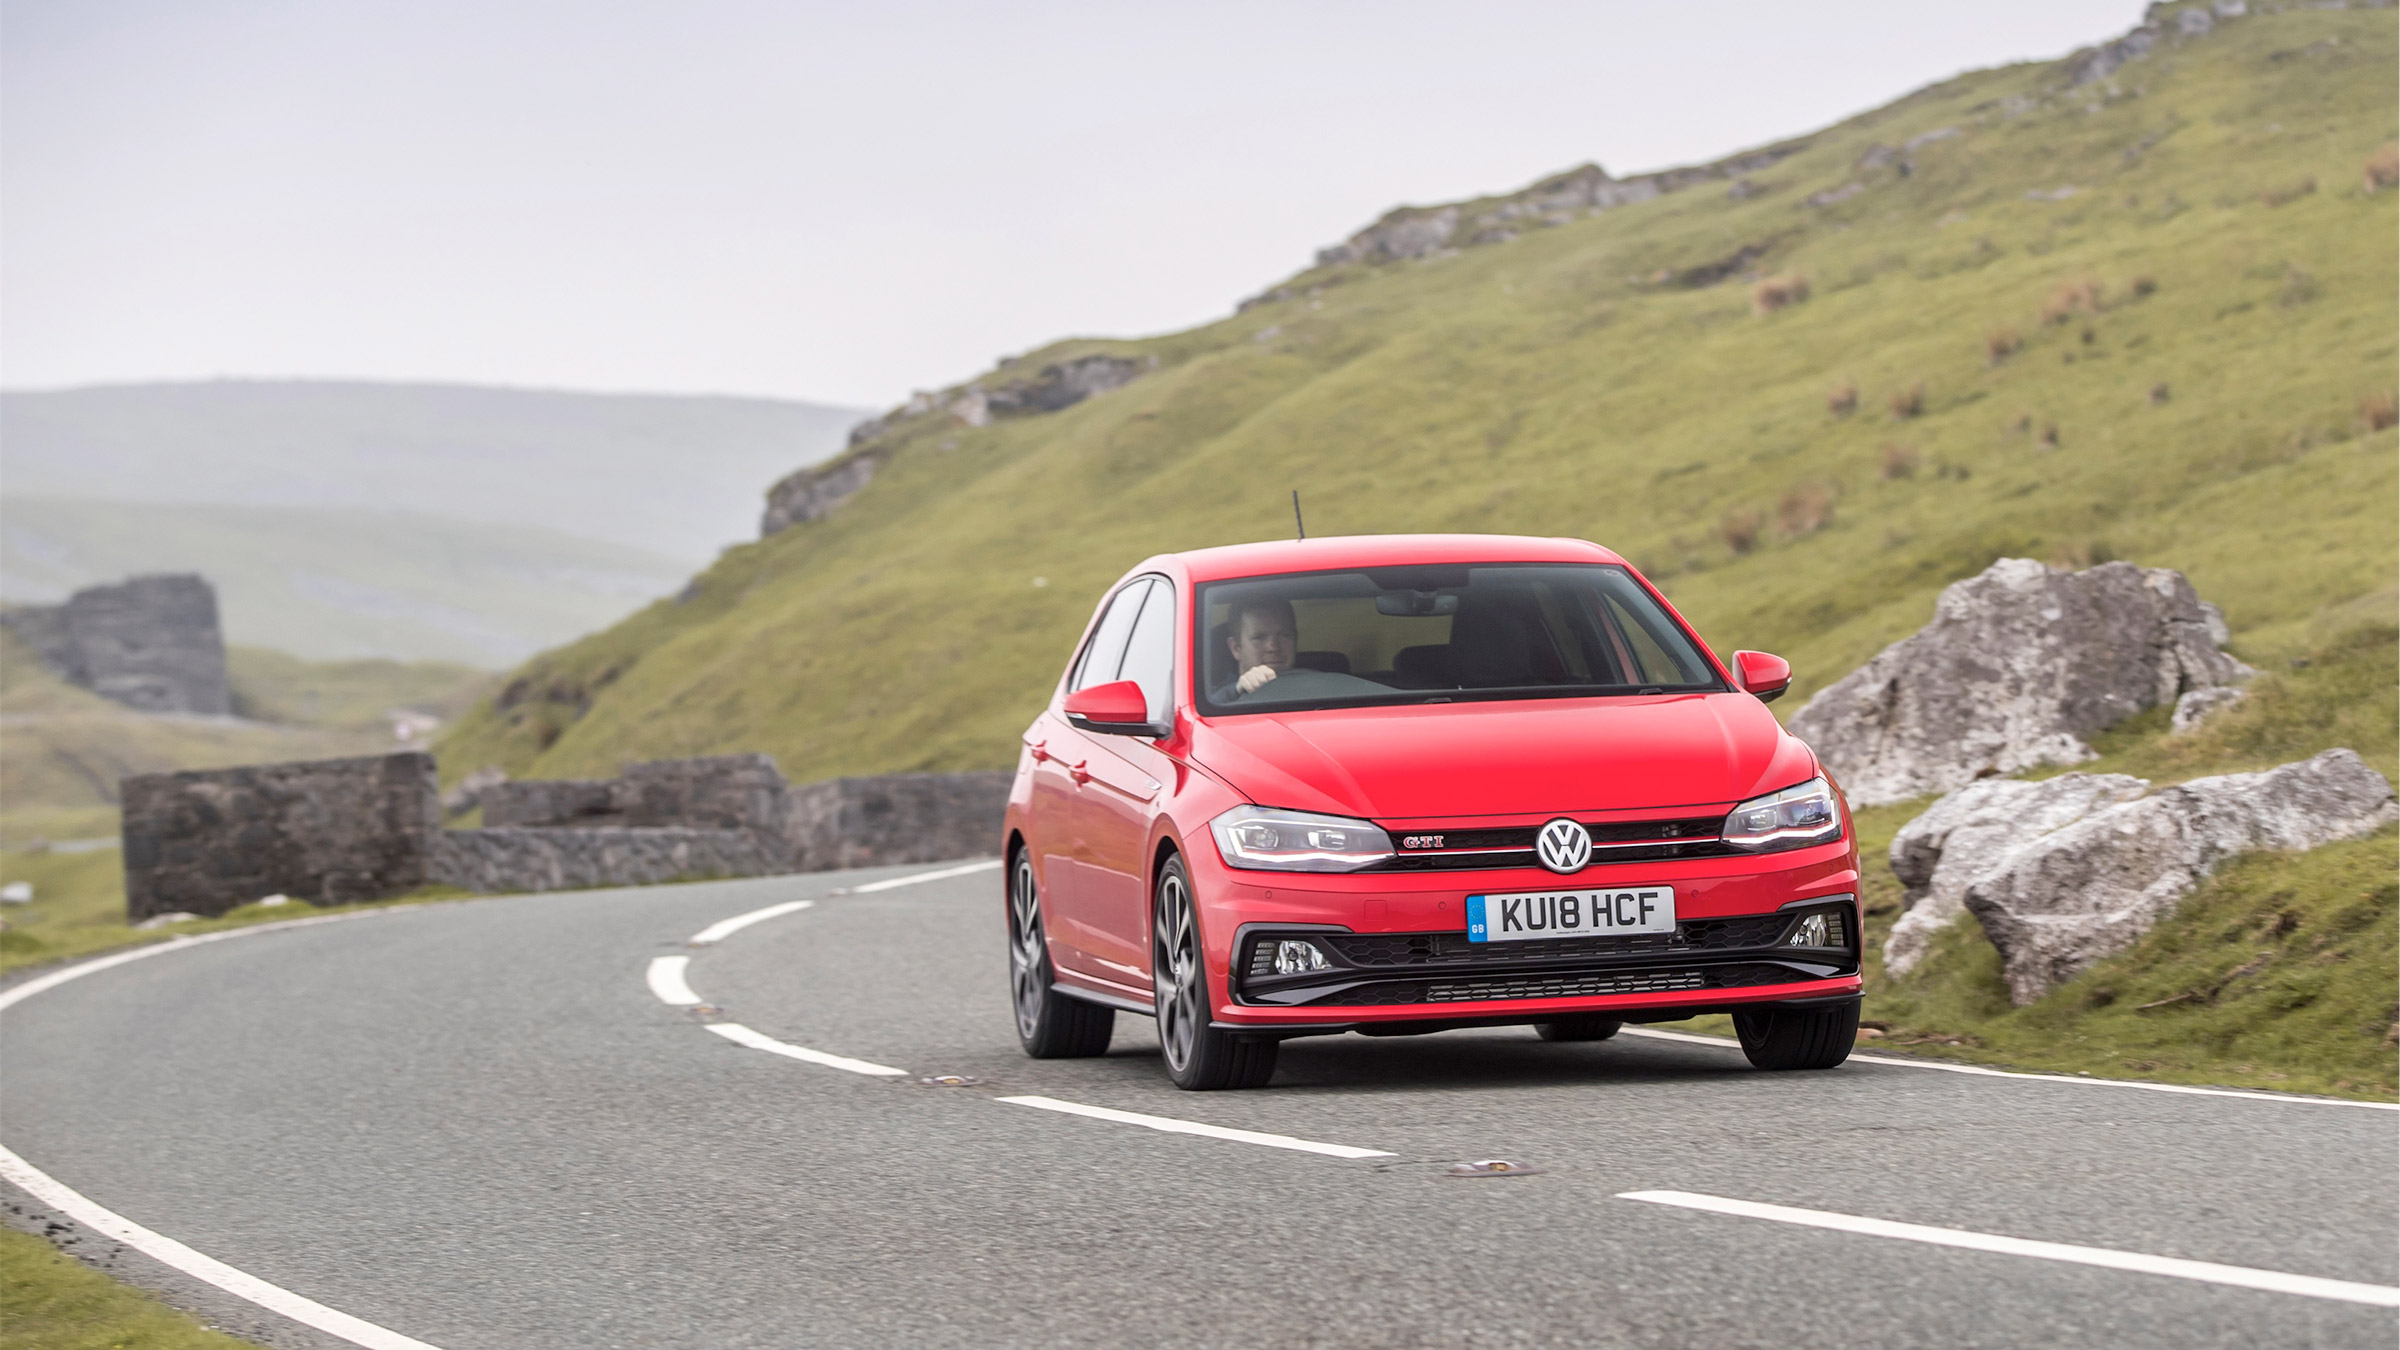 Volkswagen Polo Gti Review Finally Worthy Of Those Three Iconic Letters Evo